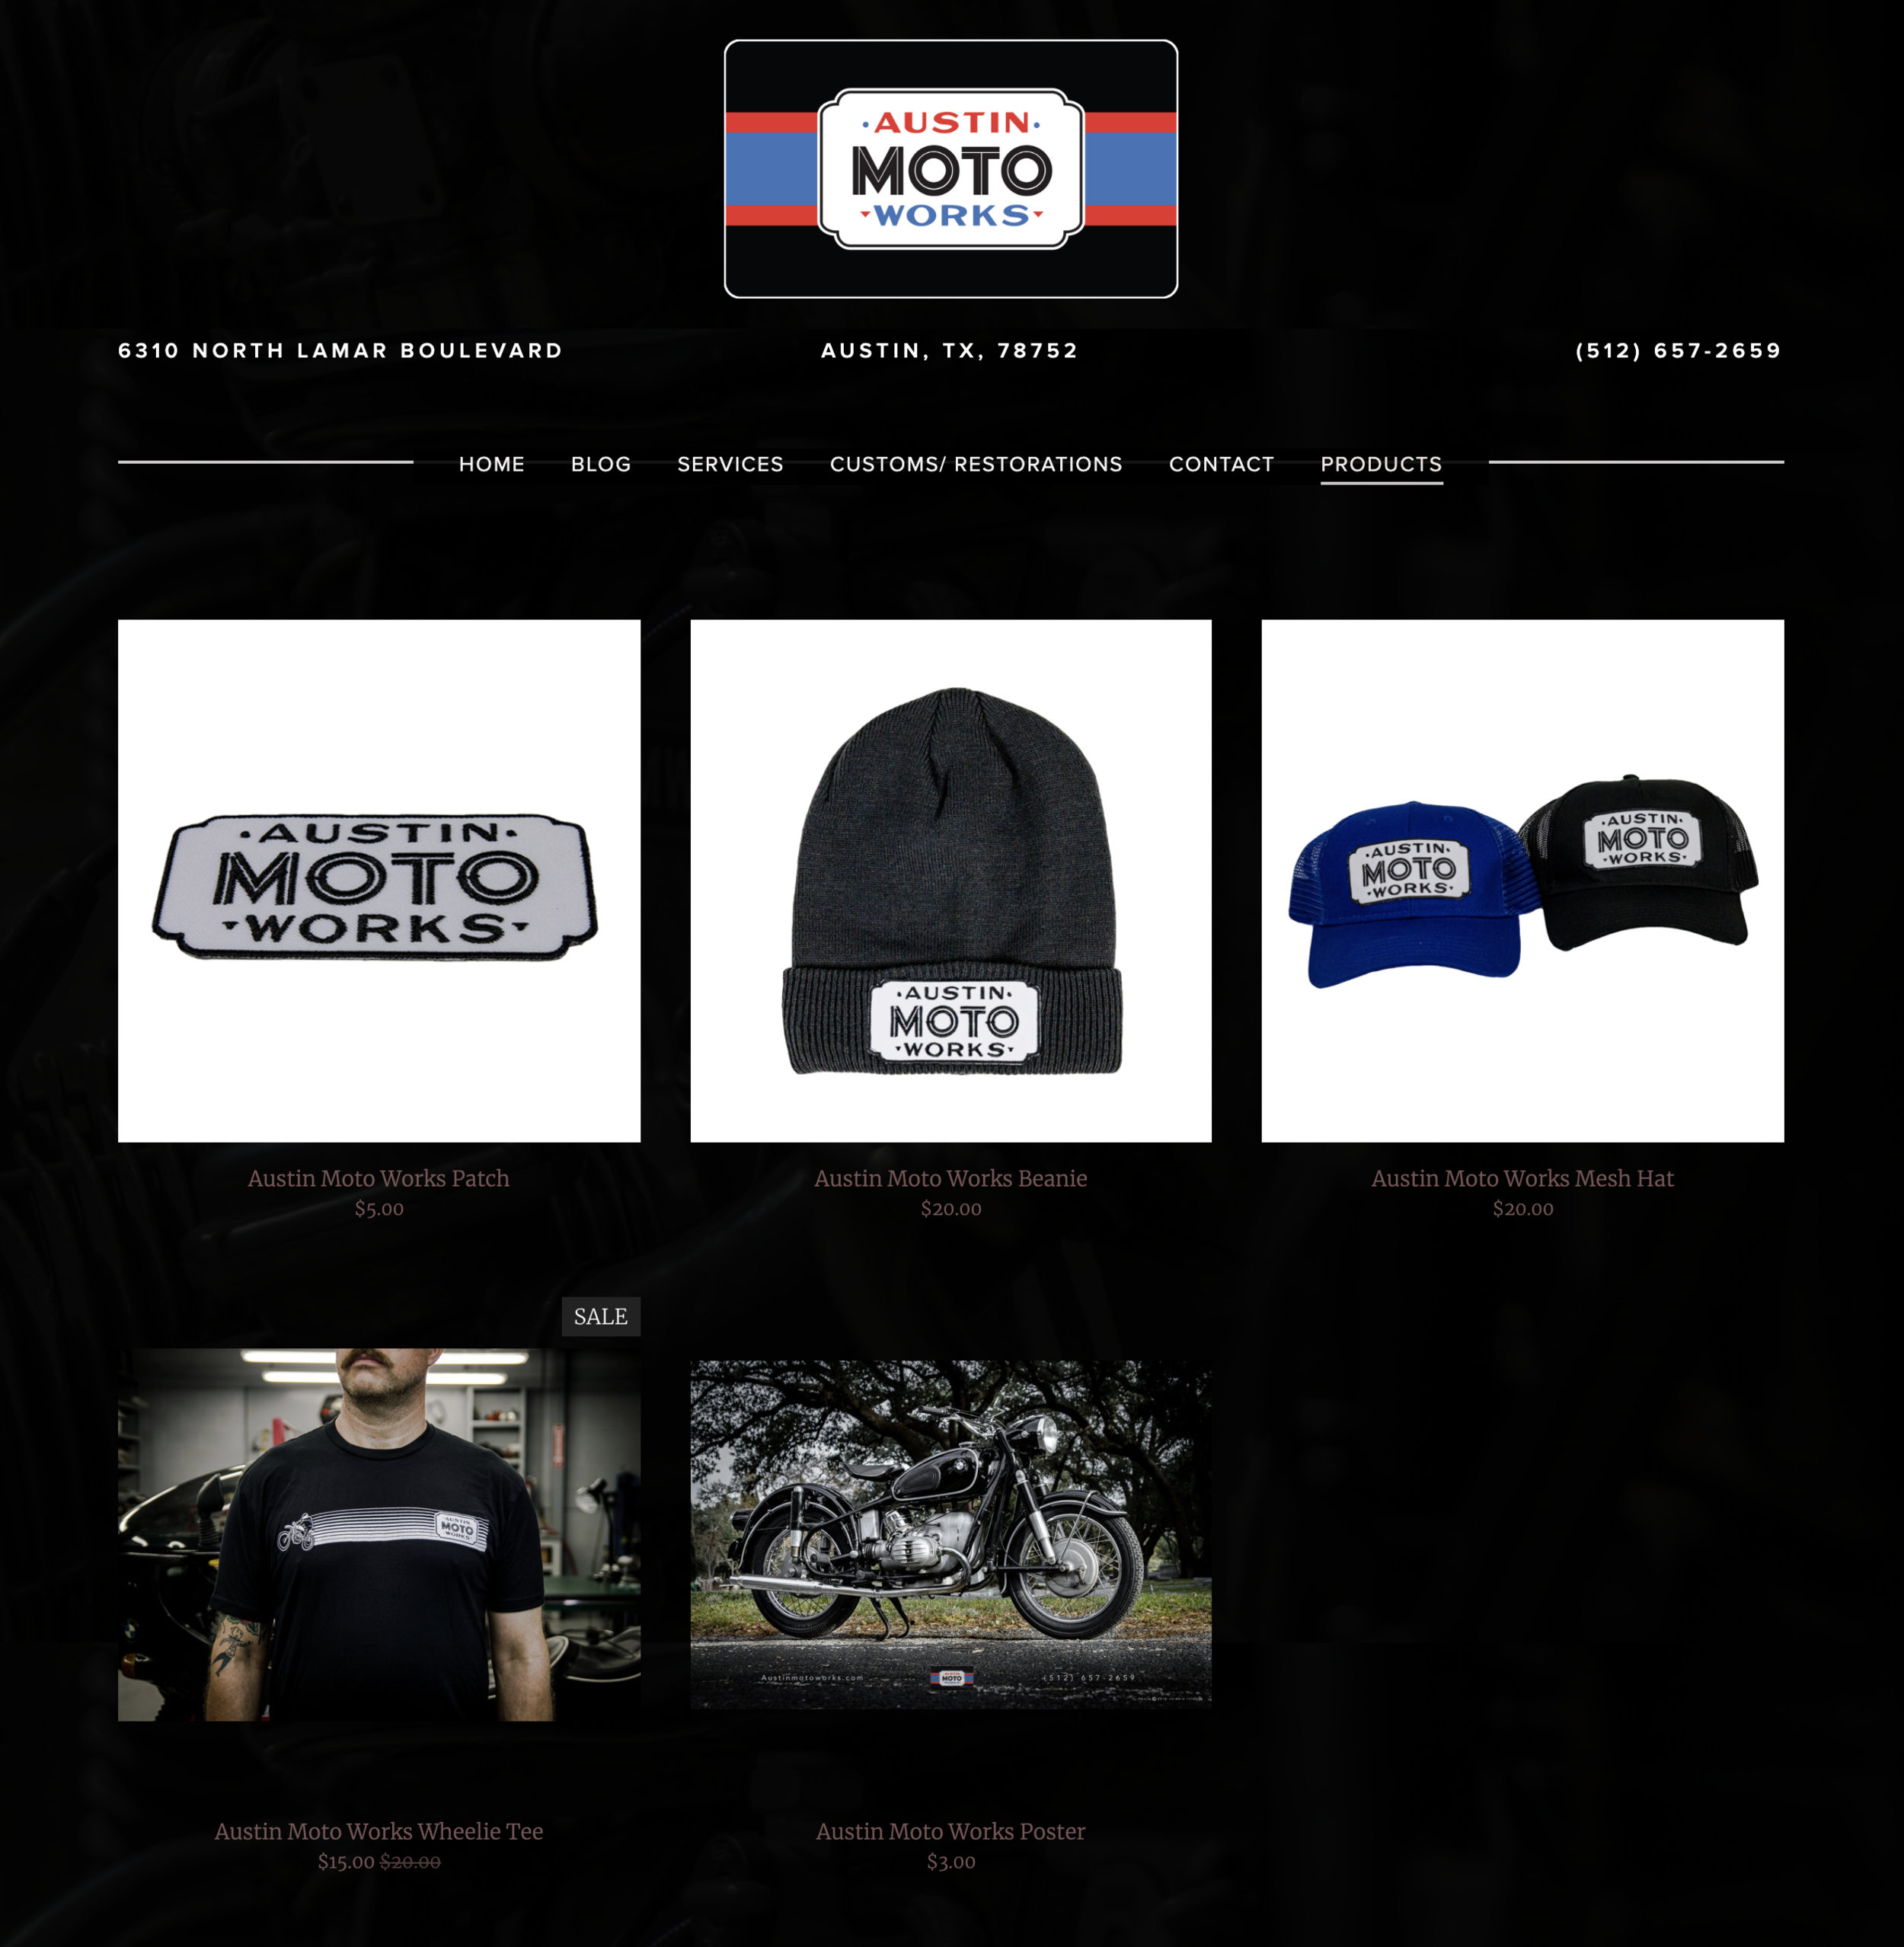 ATX moto webstore launch image.png